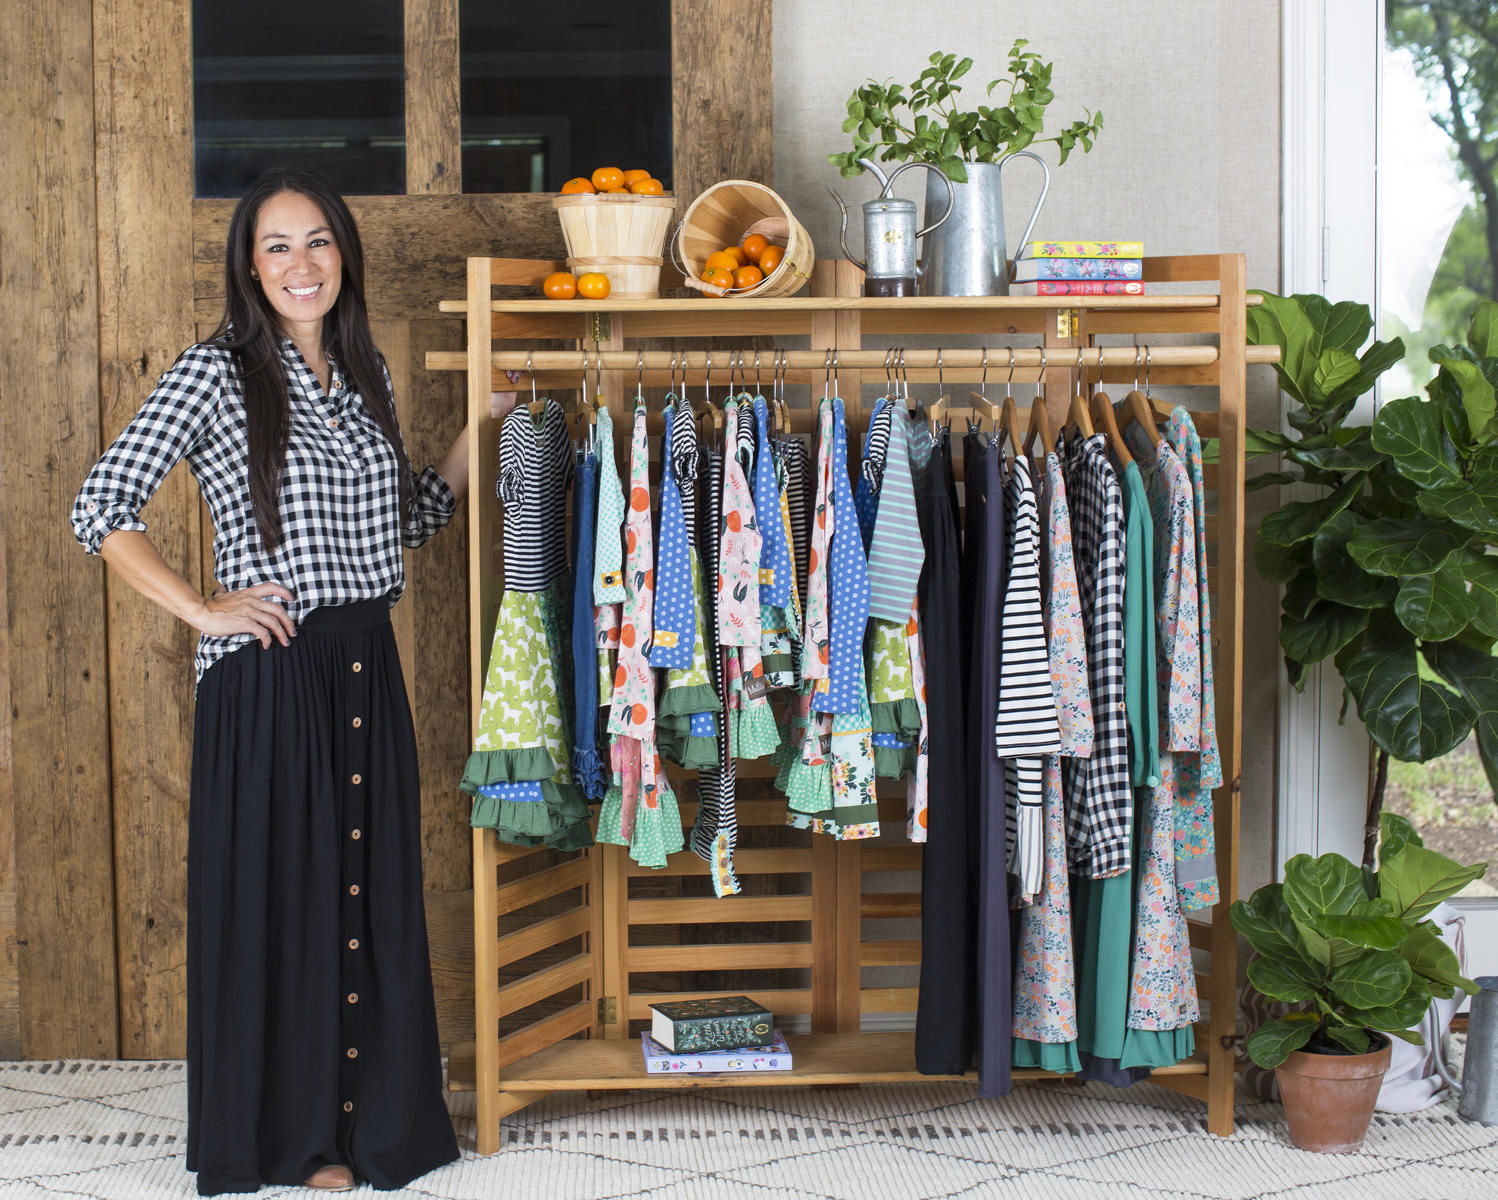 See Joanna Gaines Sweet Kids Clothing Line For Matilda